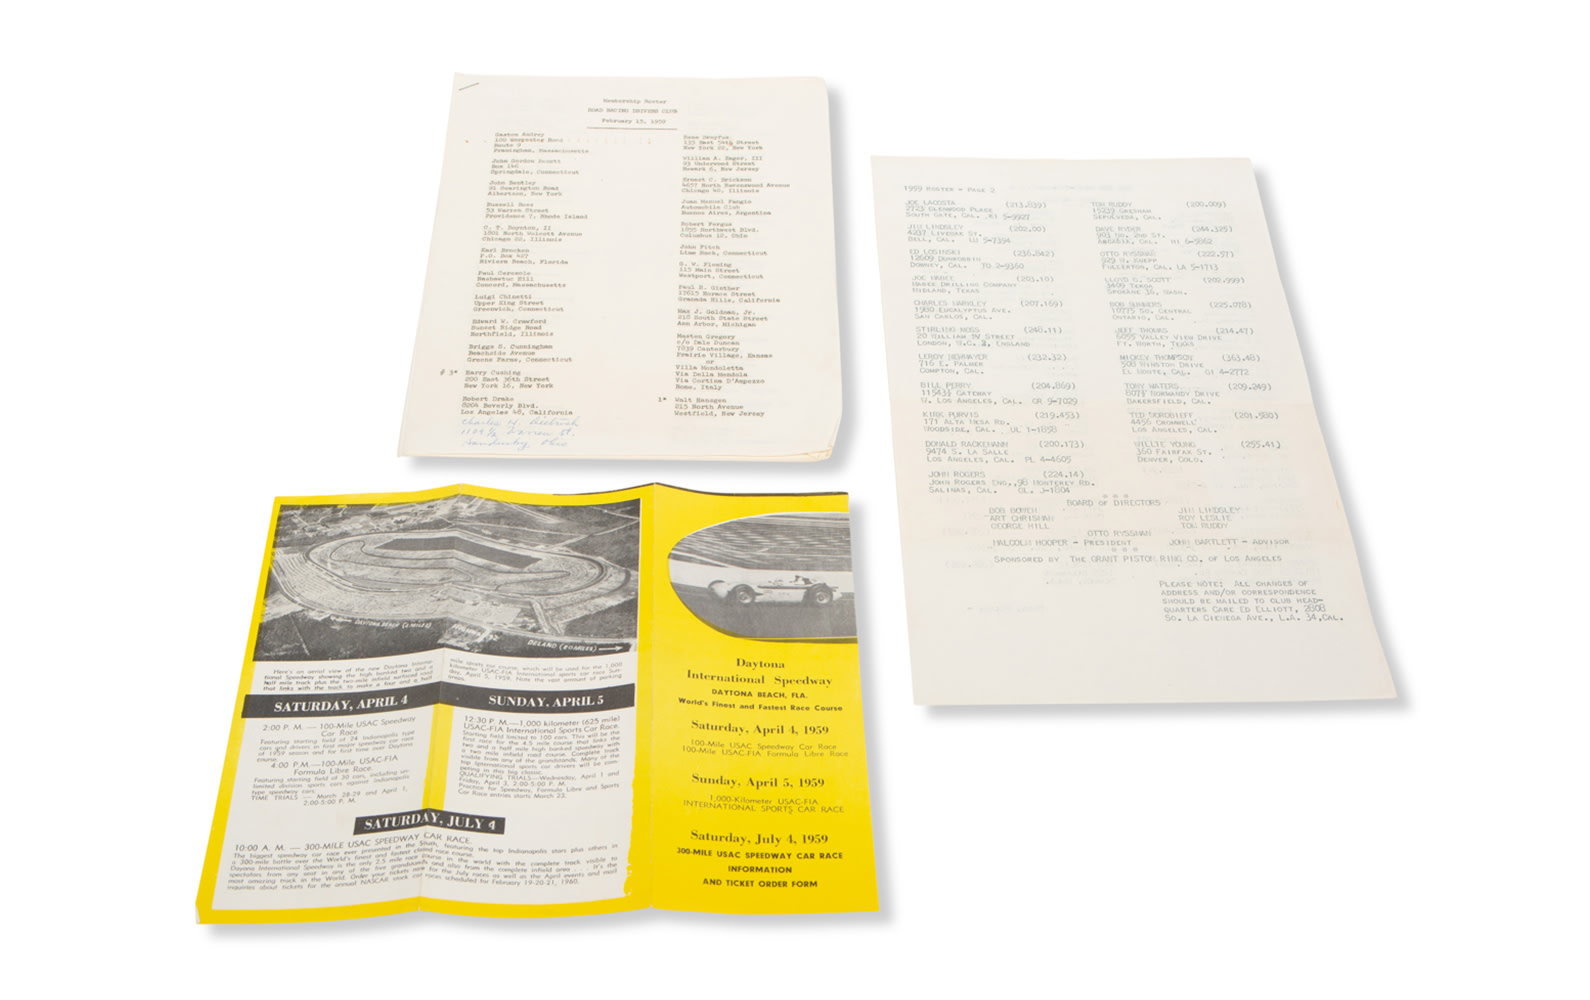 1959 Road Racing Driver's Club Membership Roster, 200 Miles-Per-Hour Club Roster, and Daytona International Speedway Brochure